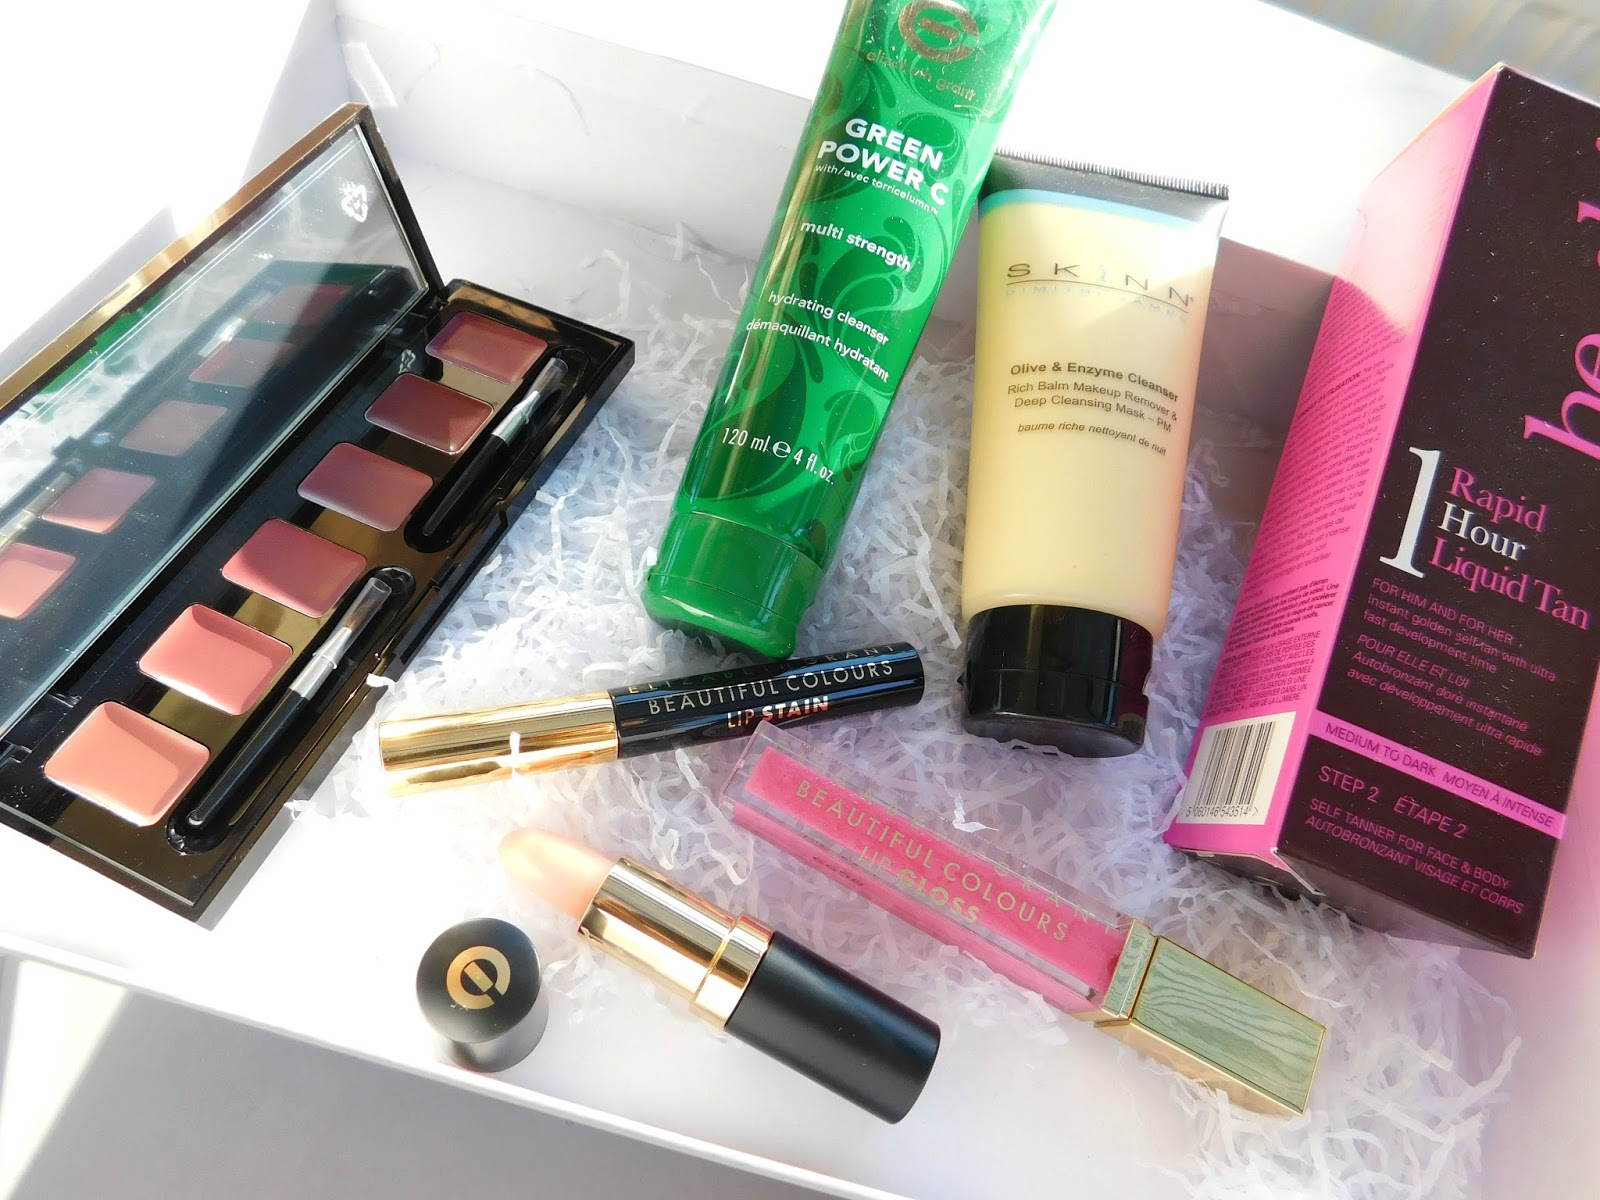 Ideal World Bloggers Box, Surprise Box, Beauty Box, Unboxing Post